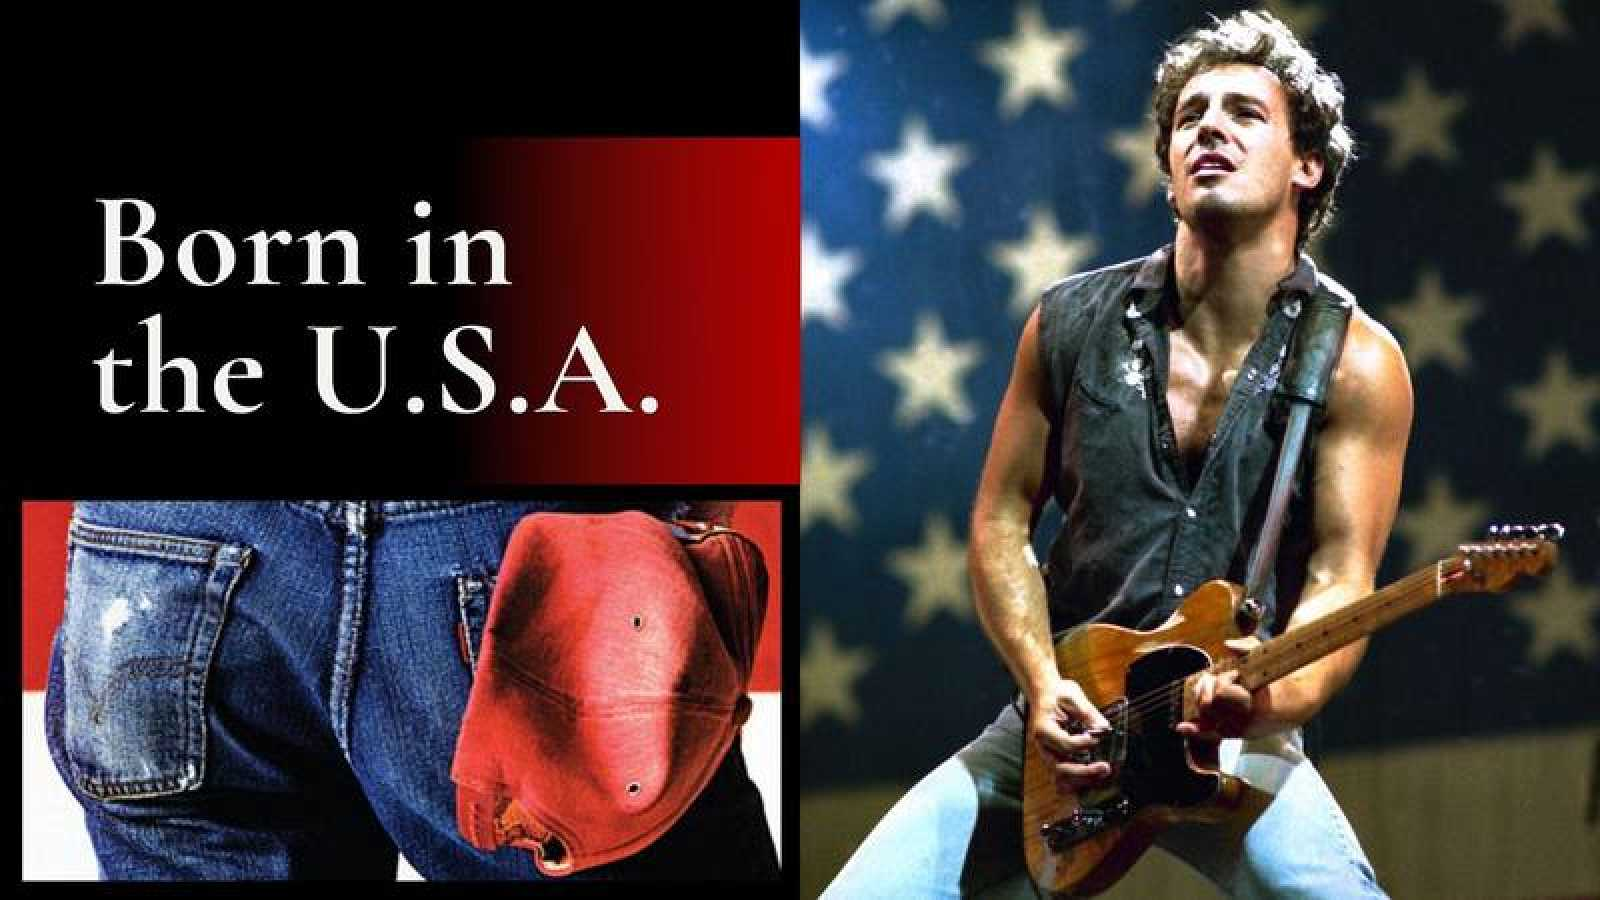 Born in the U.S.A., Bruce Springsteen (1984)